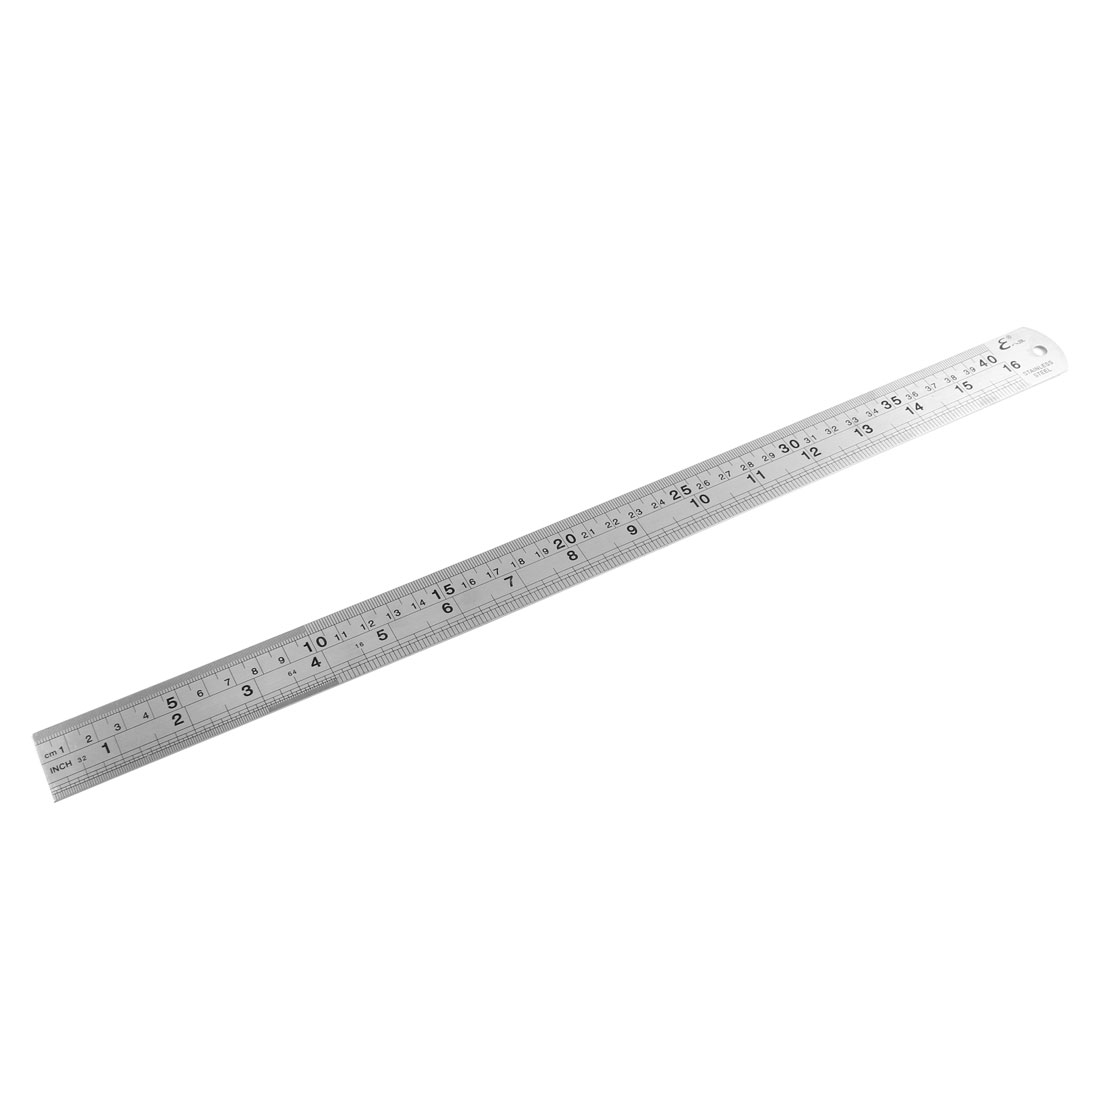 Stainless Steel Double Side Measuring Tool Straight Ruler 40cm 16 Inches